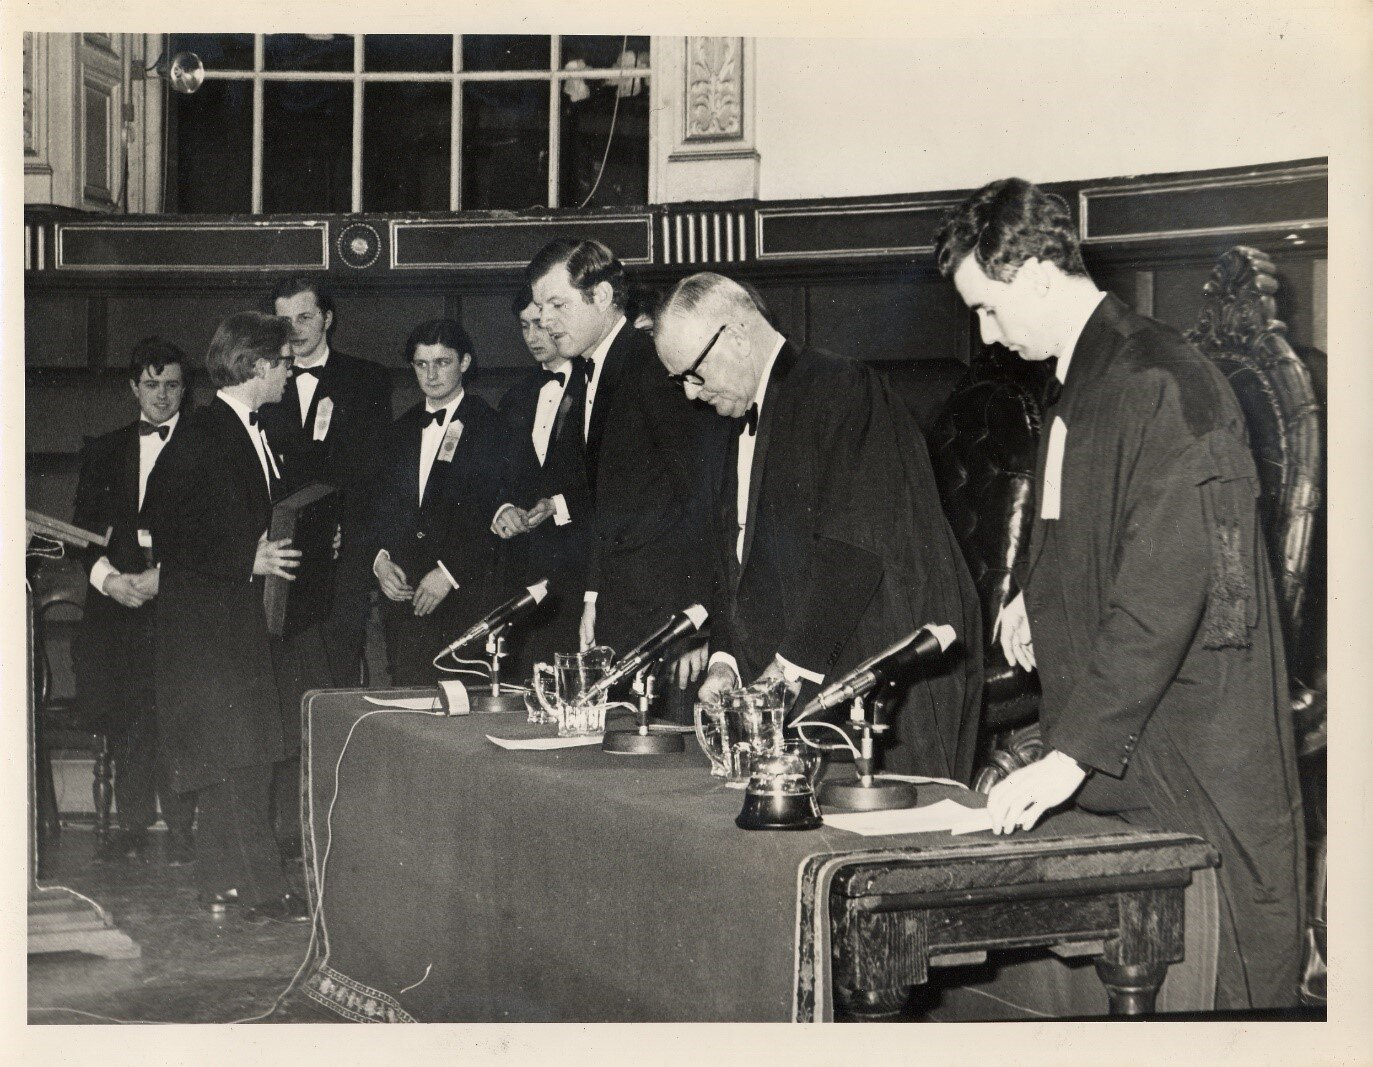 HIST200 CELEBRATIONS: (R-L) Auditor Ian Ashe, Hist President Frederick Boland, and US Senator Ted Kennedy